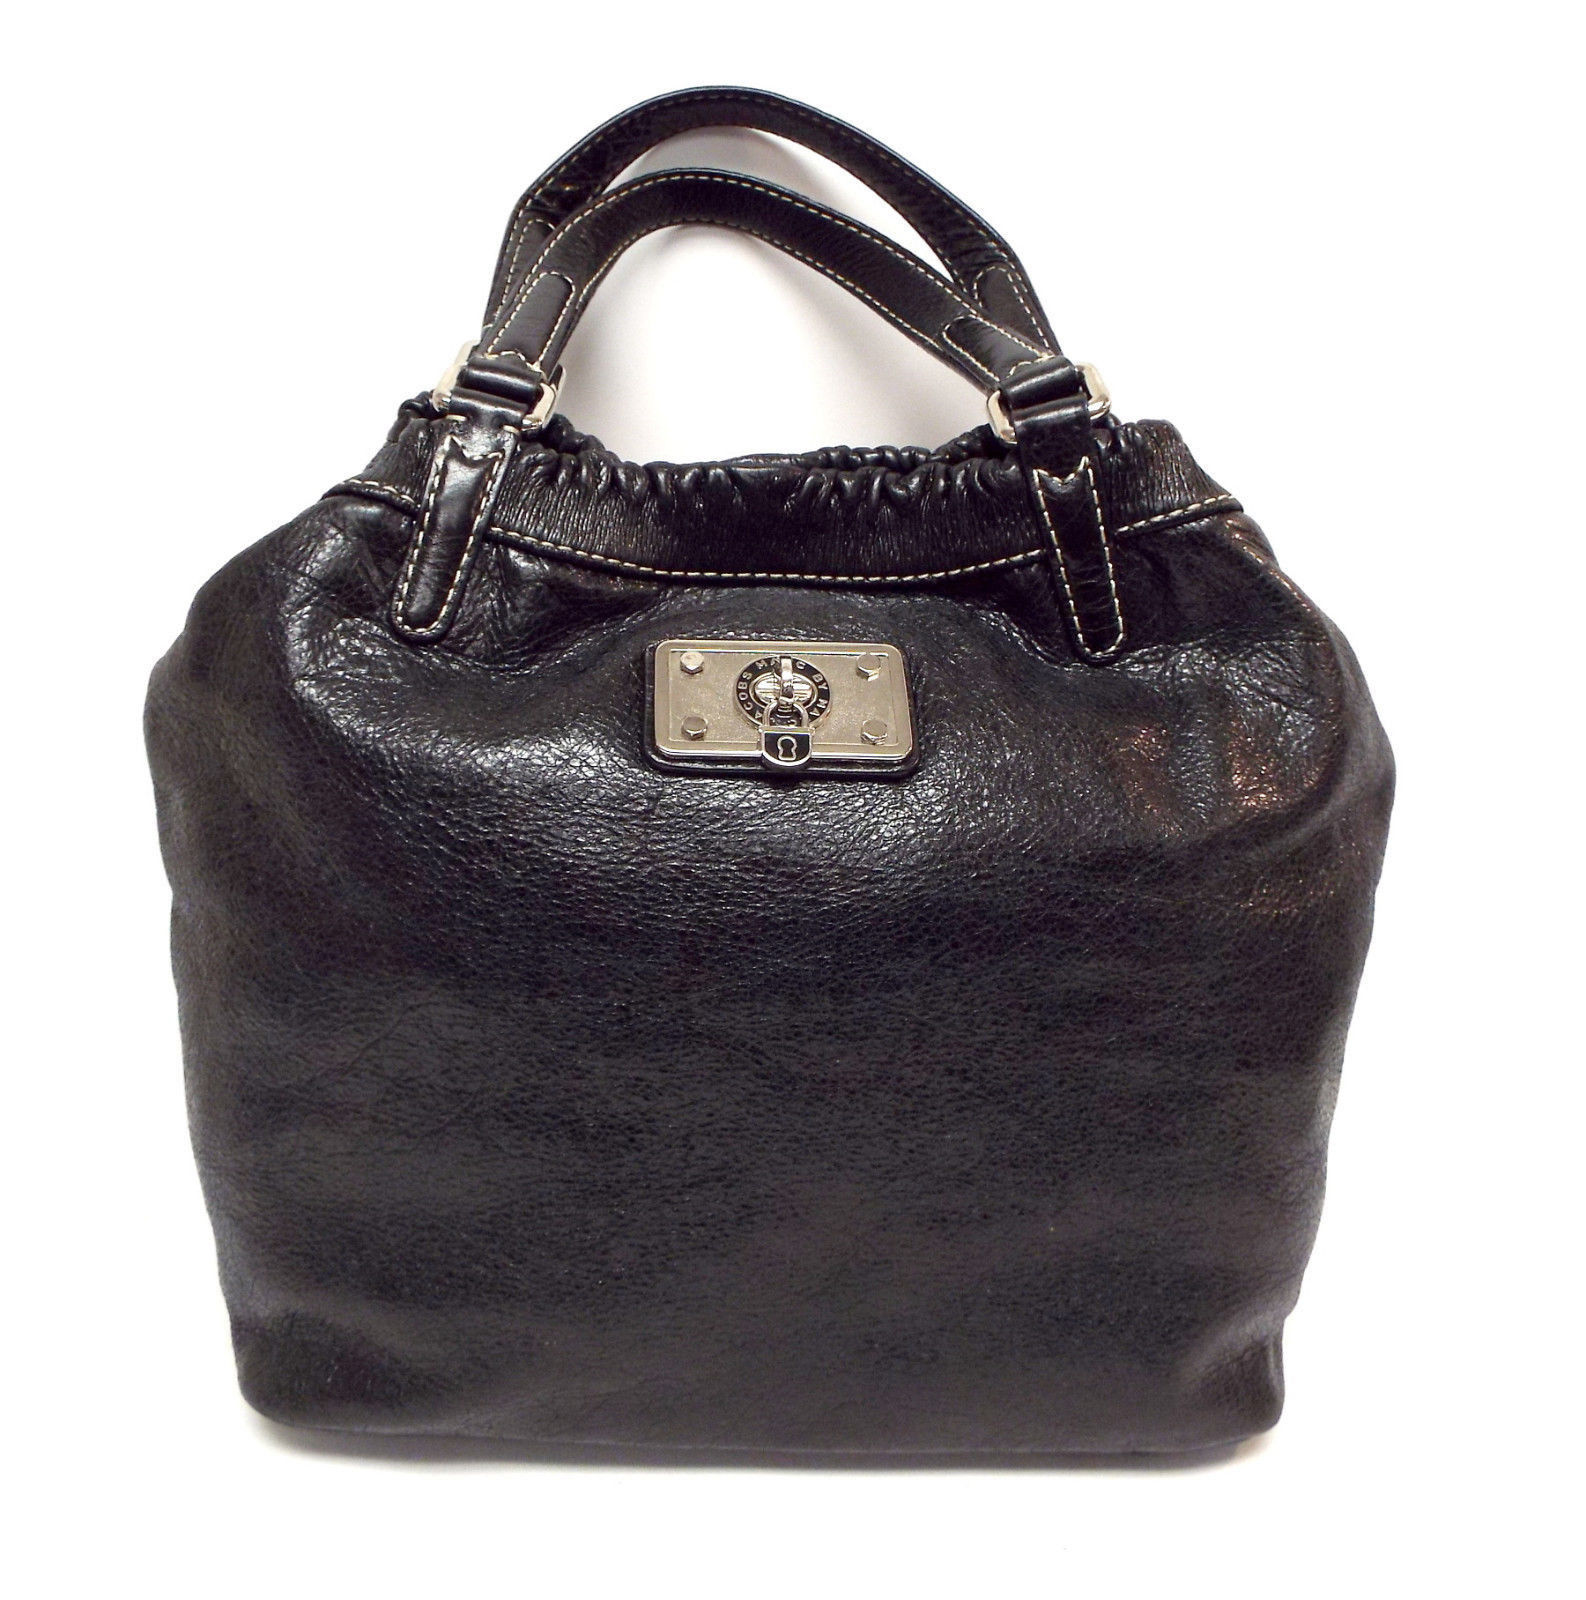 MARC by MARC JACOBS Black Hobo Tote Leather Bag w/ Lock Charm - $84.00